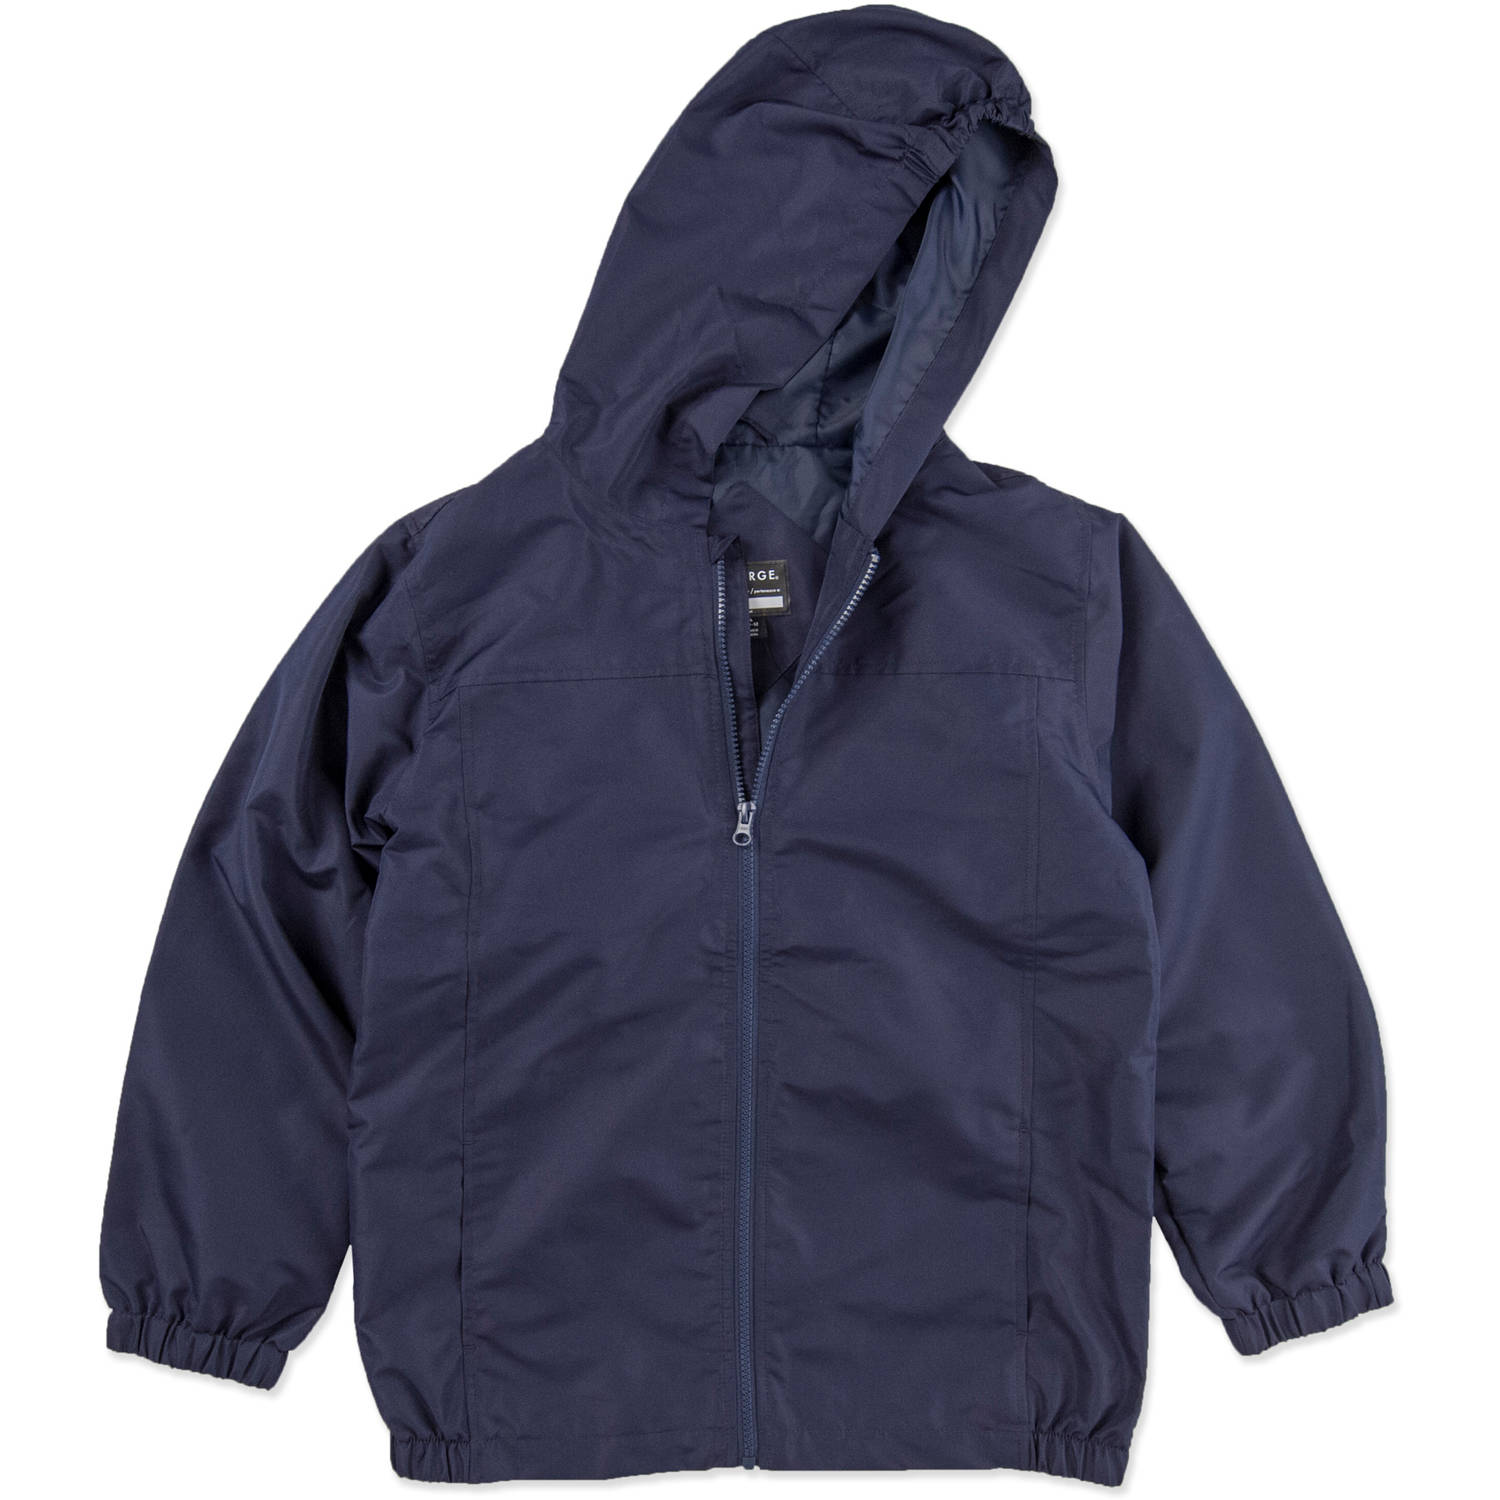 George Boys' School Uniforms, Packable Jacket